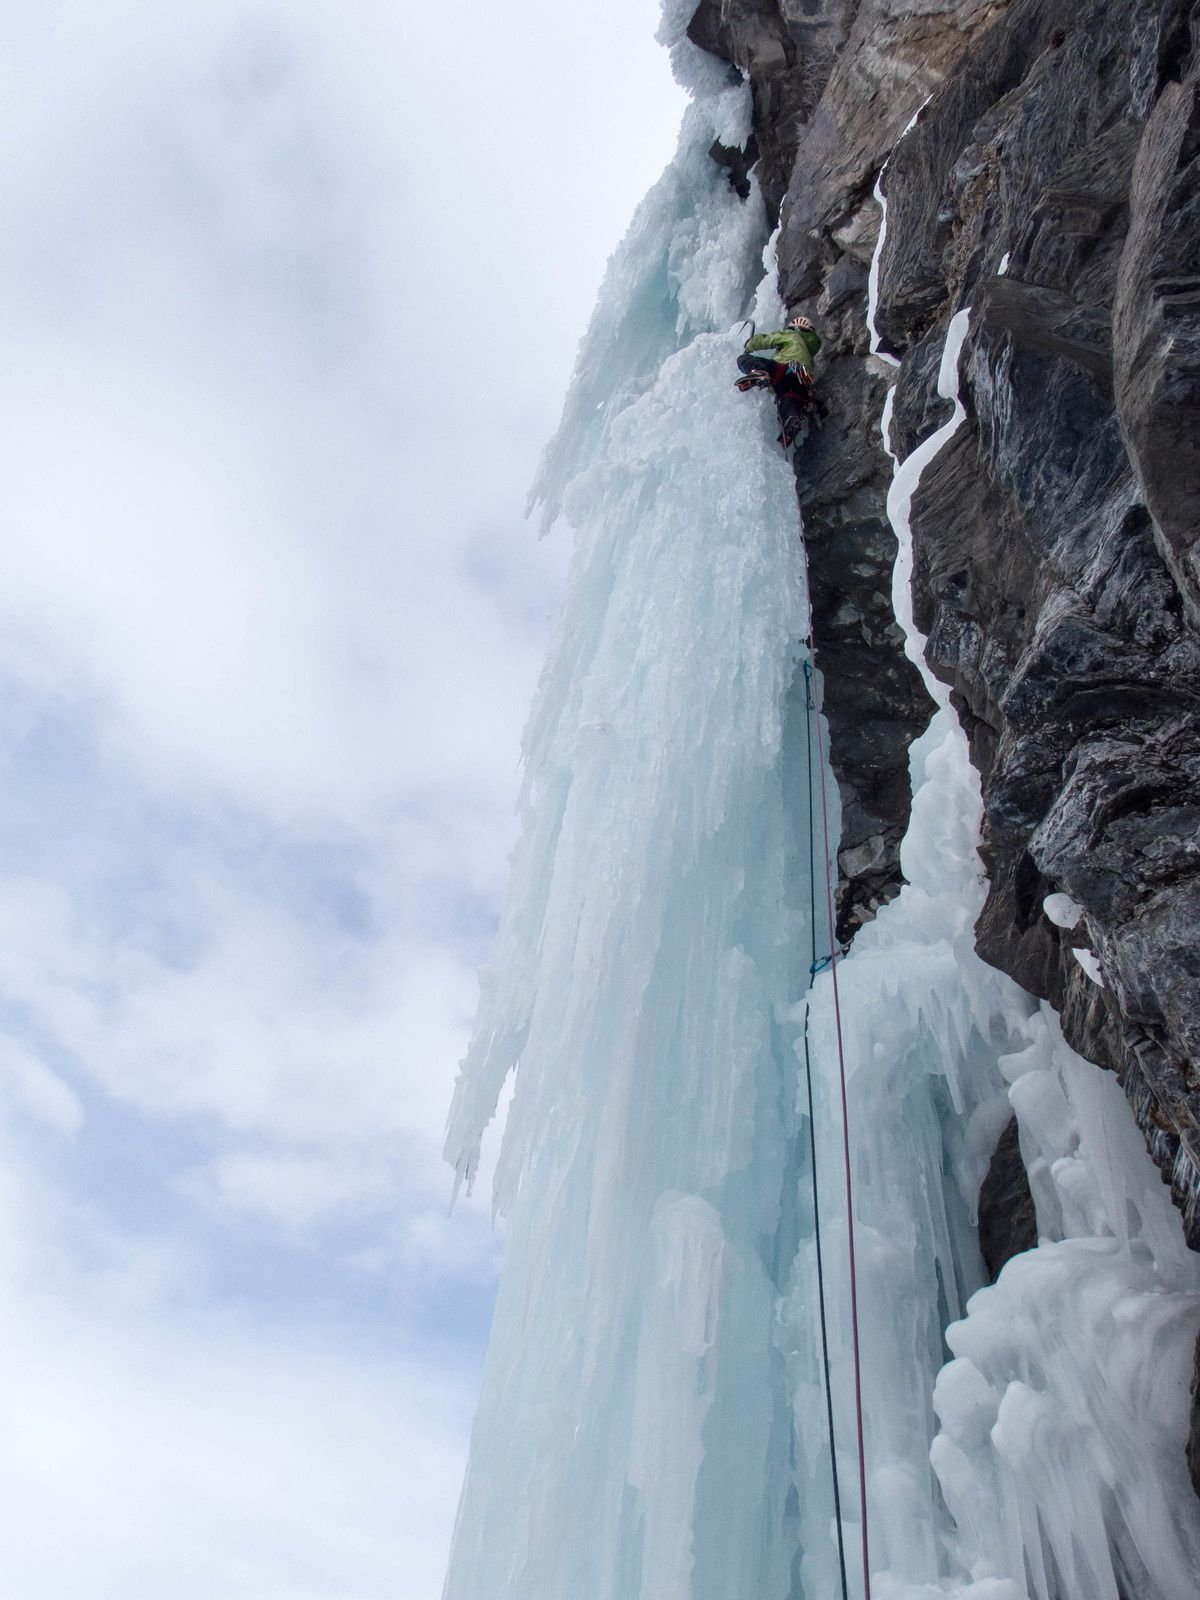 Ice fall connexion